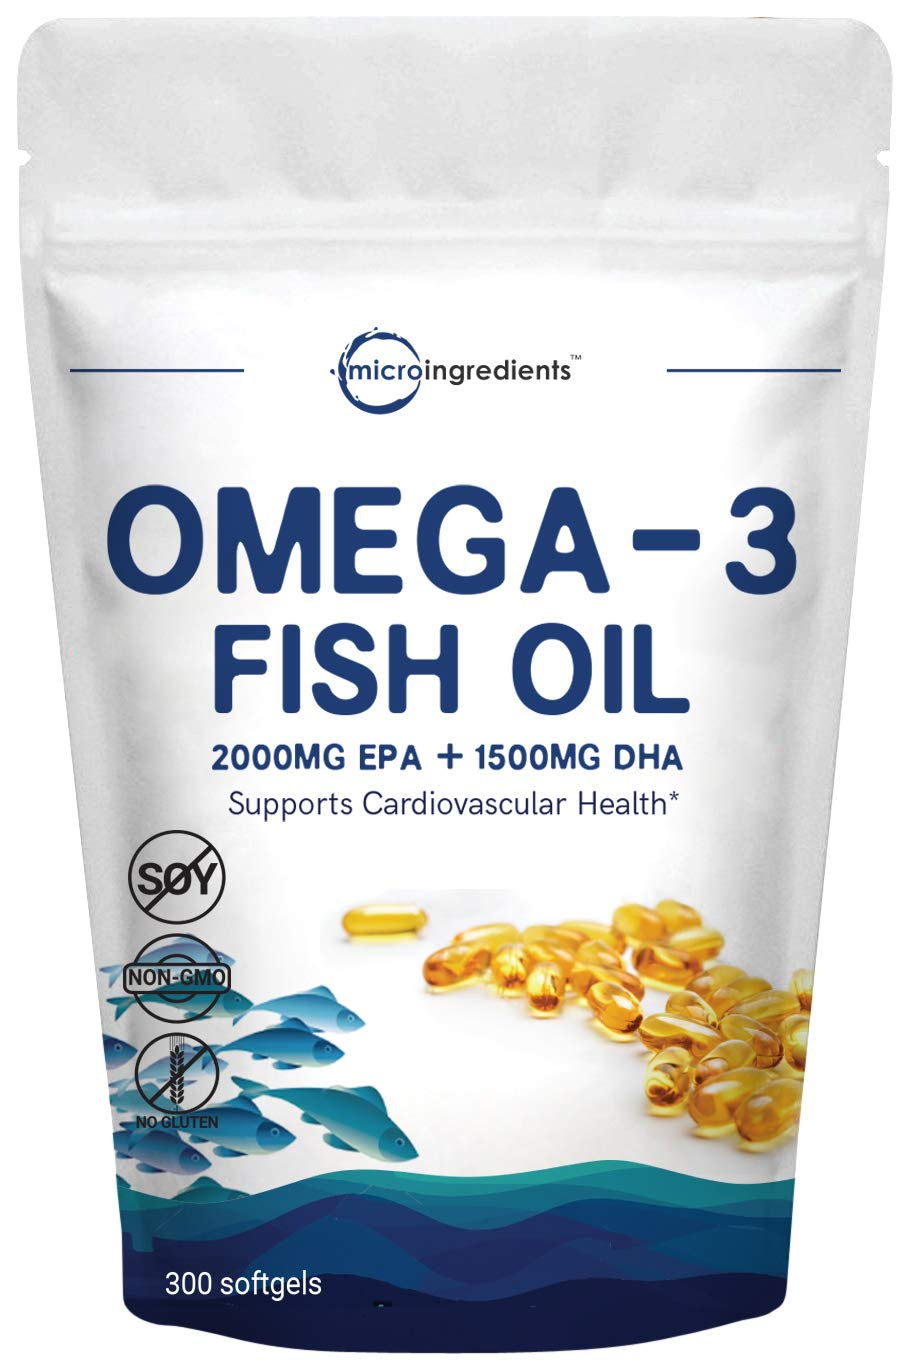 Triple Strength Omega 3 Fish Oil Supplement, 3750mg Per Serving, 300 Softgels, EPA 2000mg, DHA 1500mg, Strongly Supports Cognitive Health and Cardiovascular Function, No GMOs and Made in USA